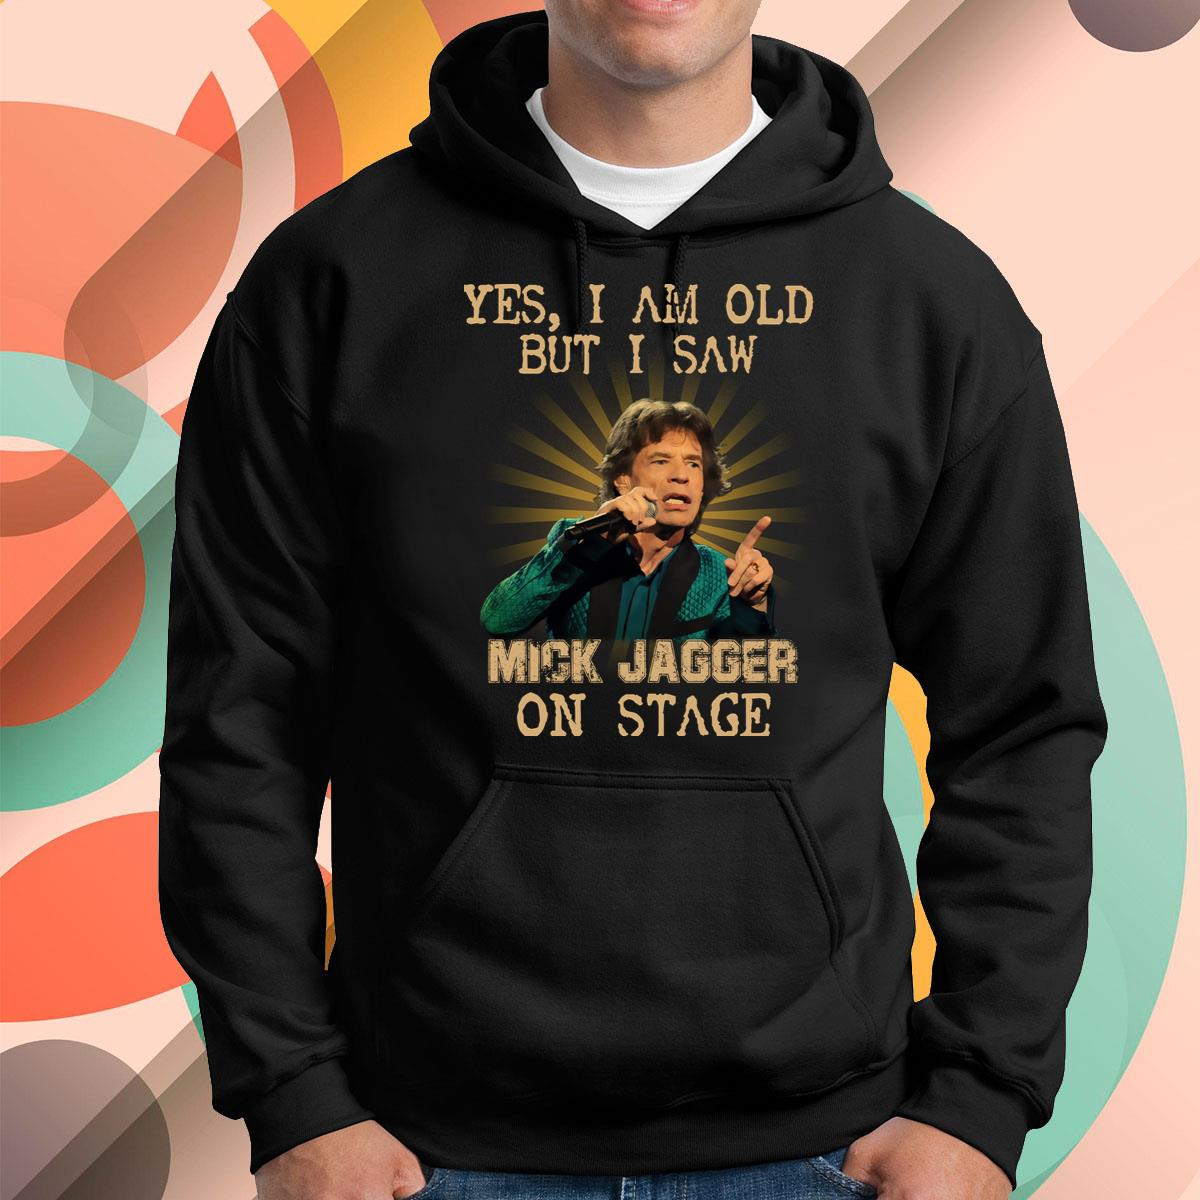 I Am Old But I Saw Mick Jagger Pullover Hoodie